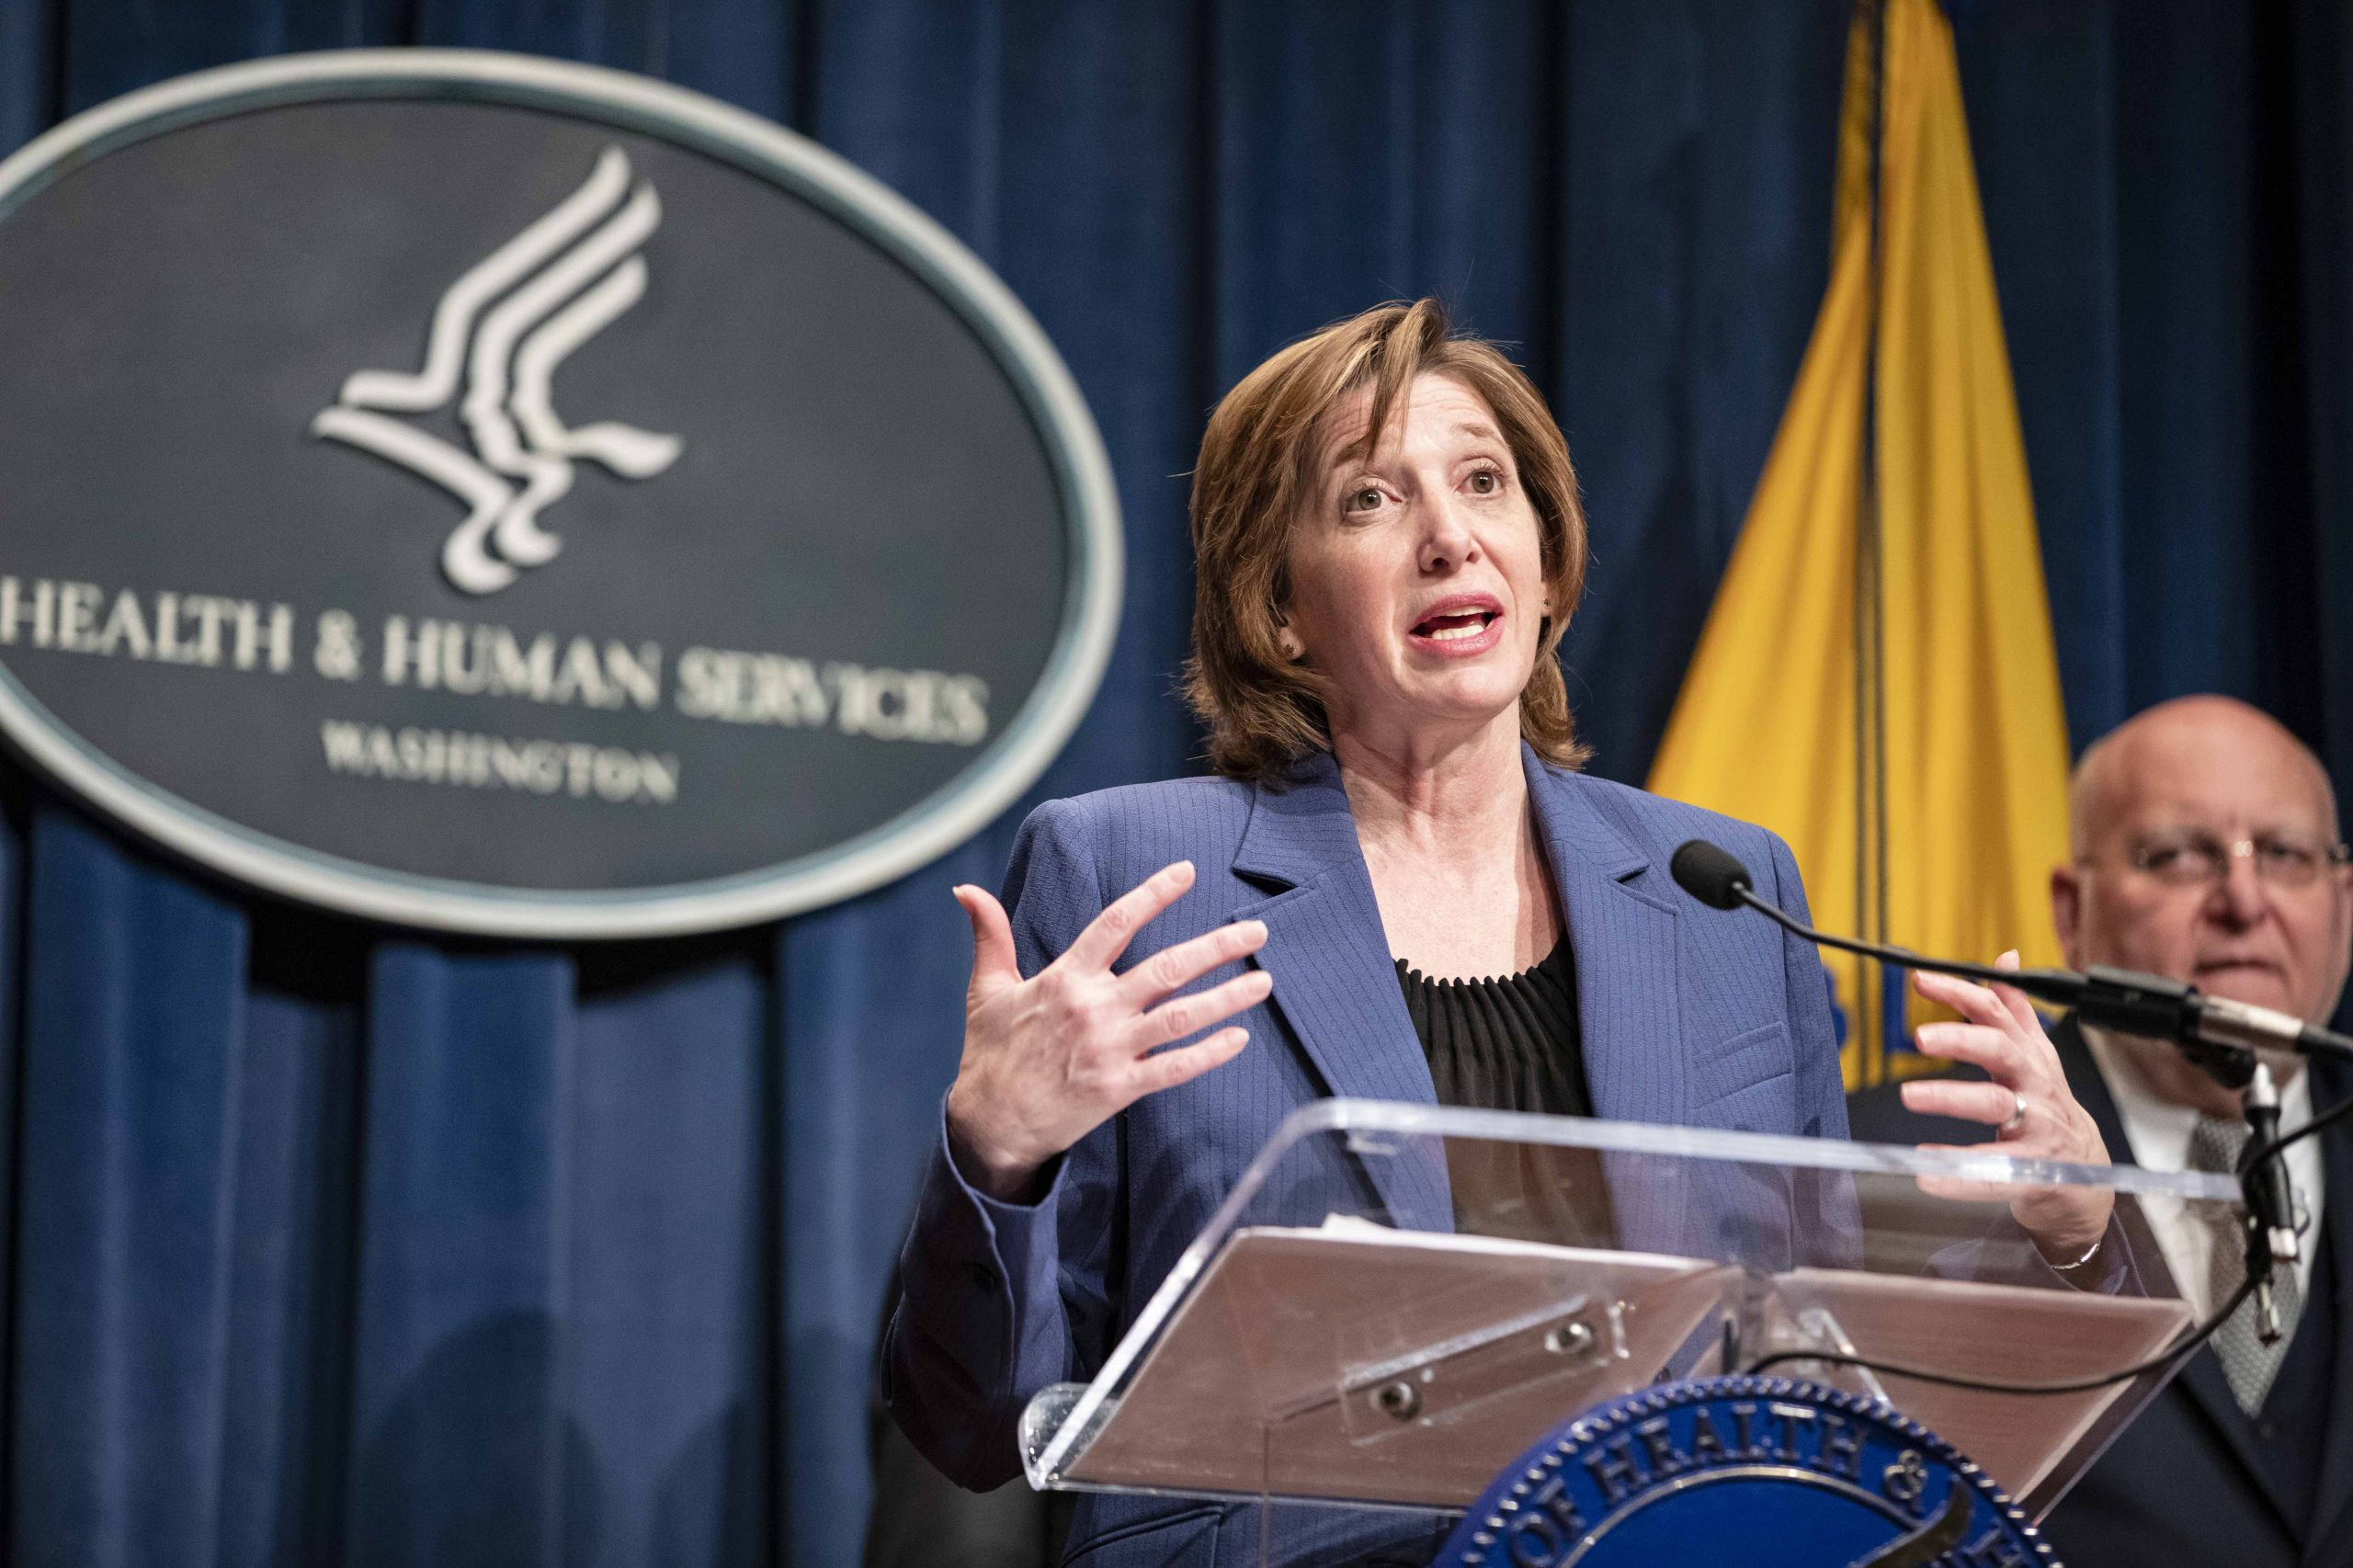 CDC reassigns official who drew spotlight for pandemic warning